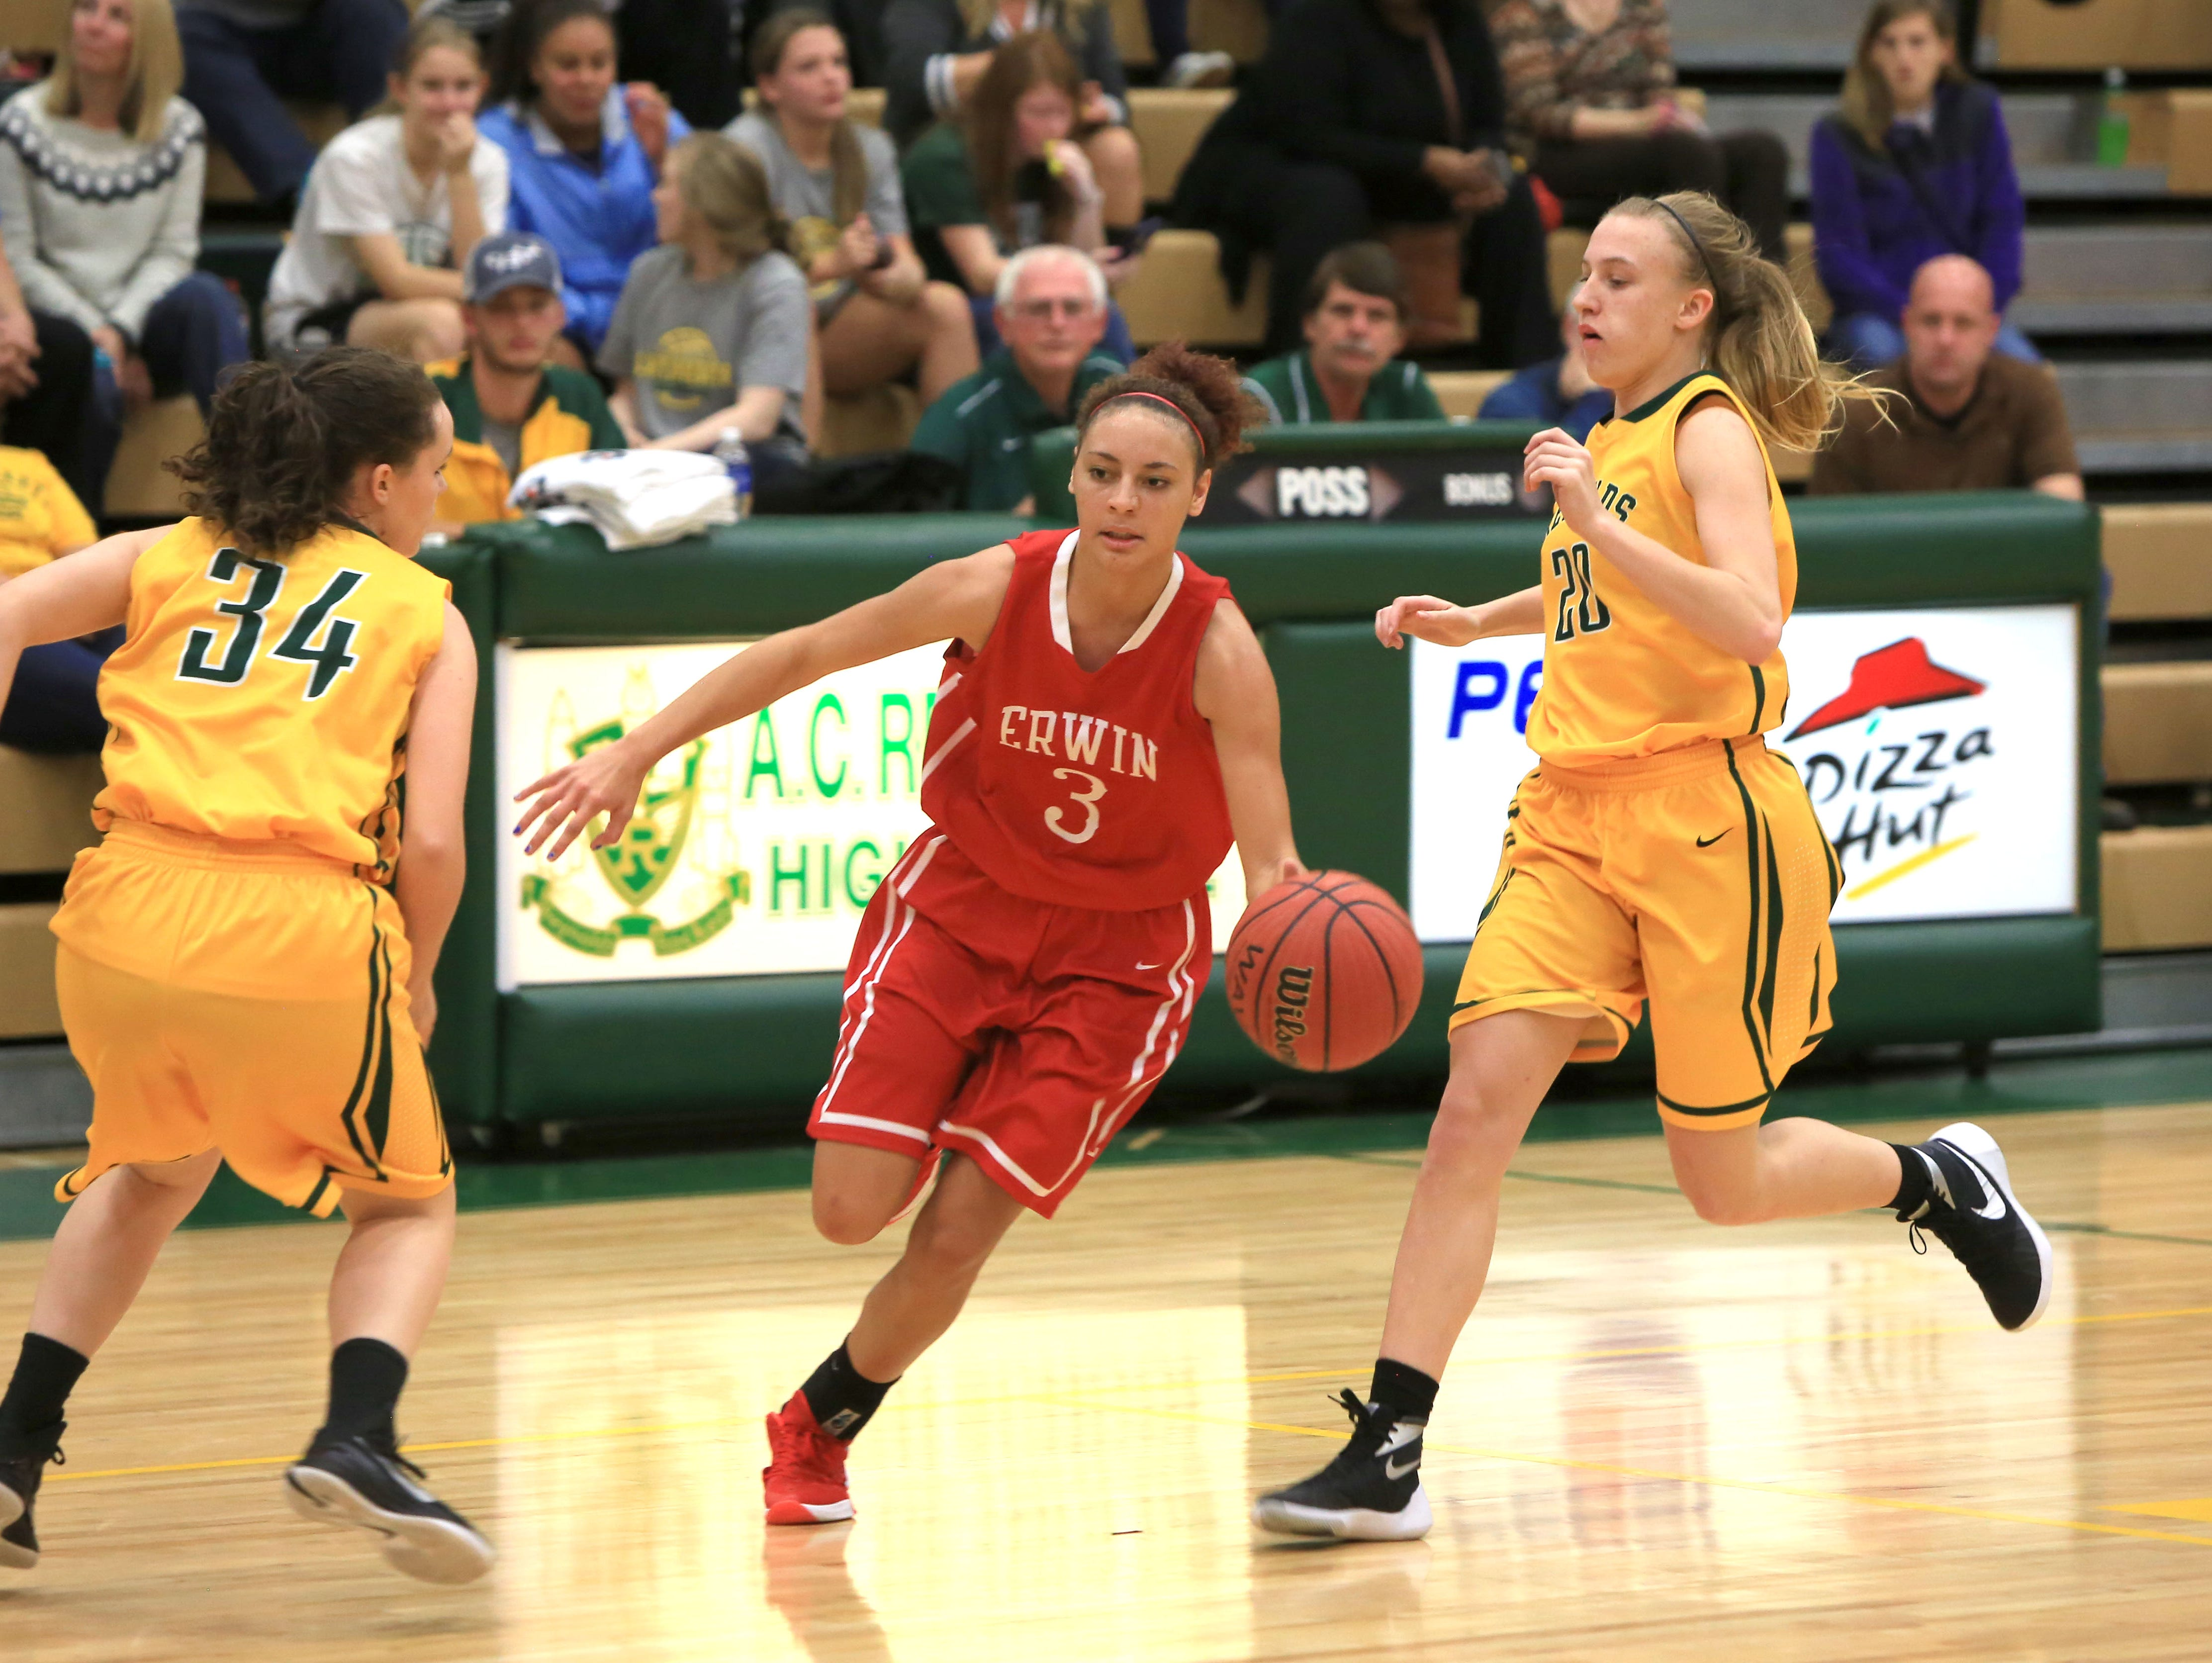 Erwin's Kendra Griffin was the top scorer for the Warriors on Saturday at Rabun Gap (Ga.).